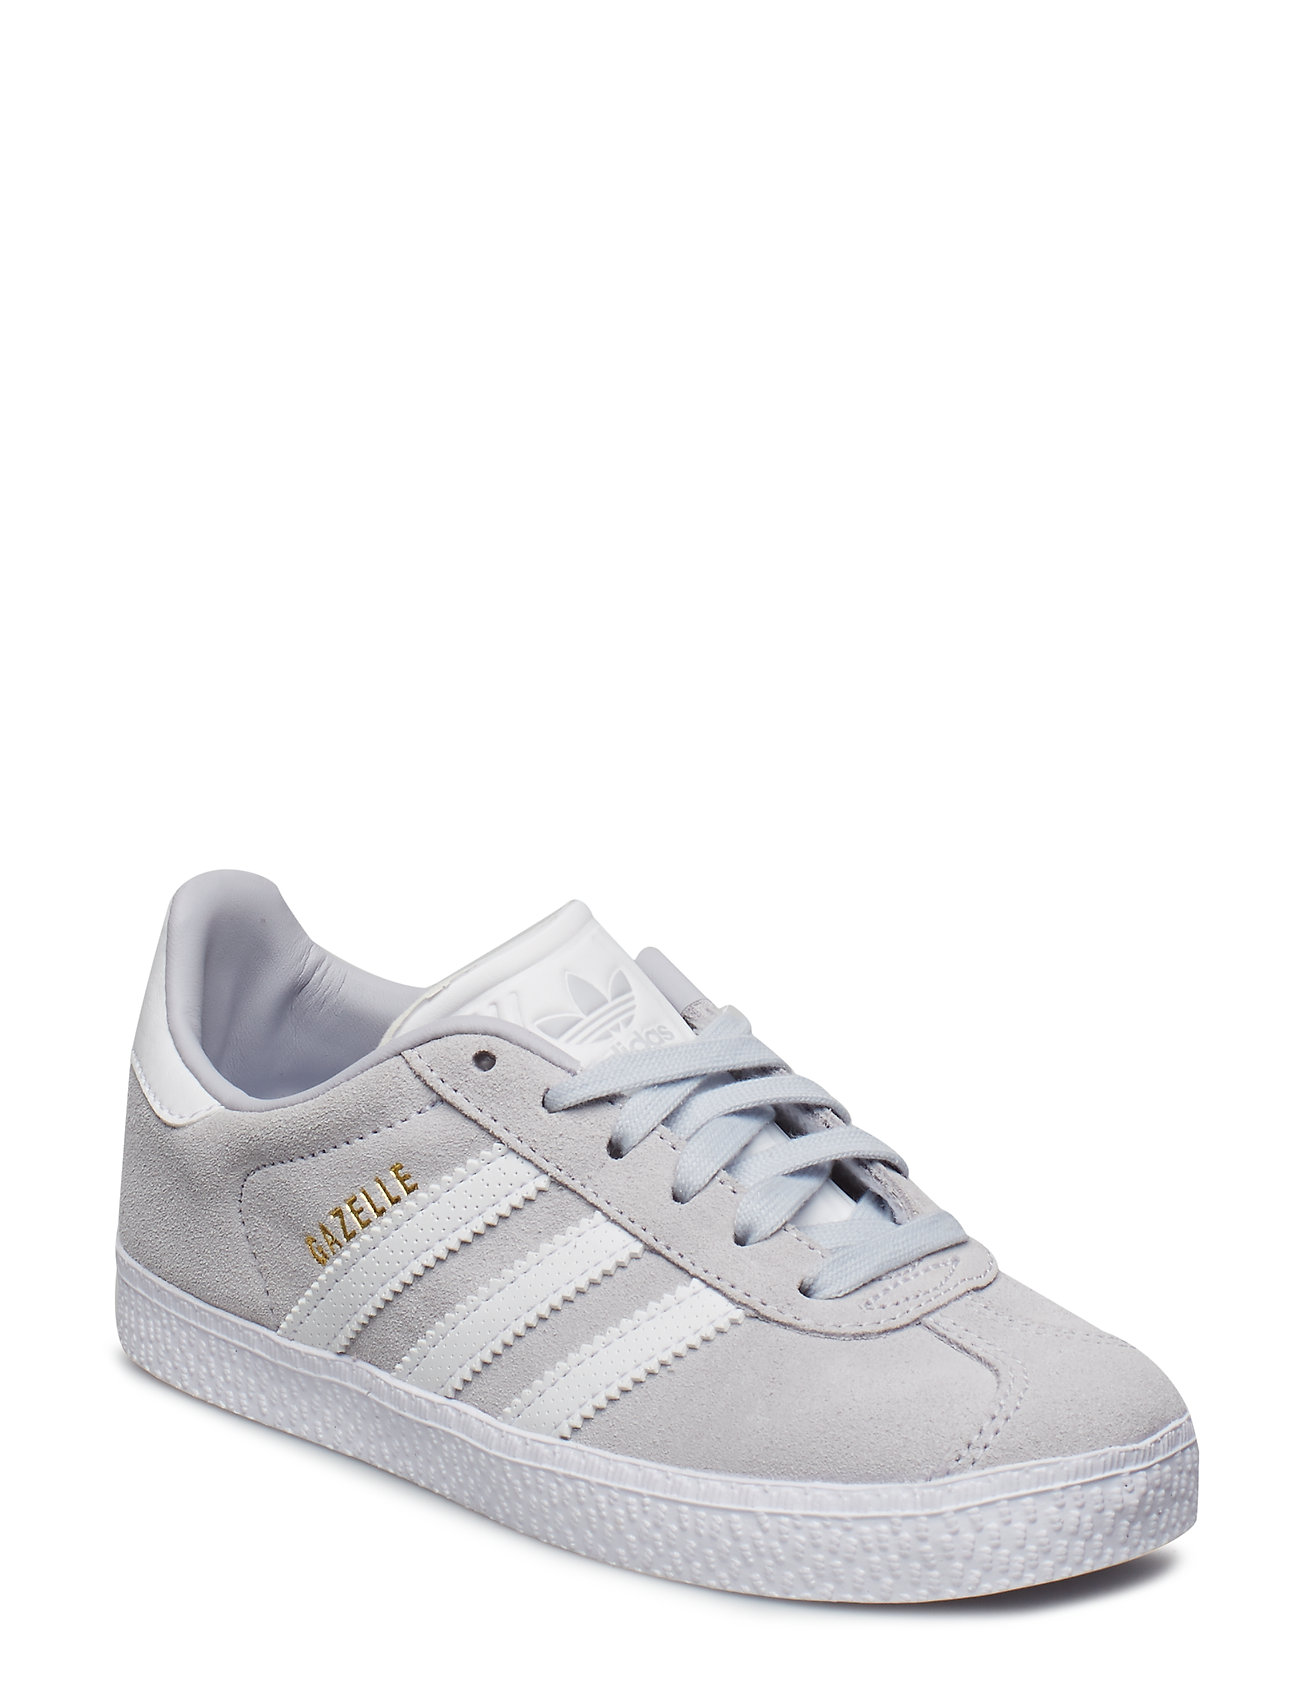 adidas originals Gazelle C